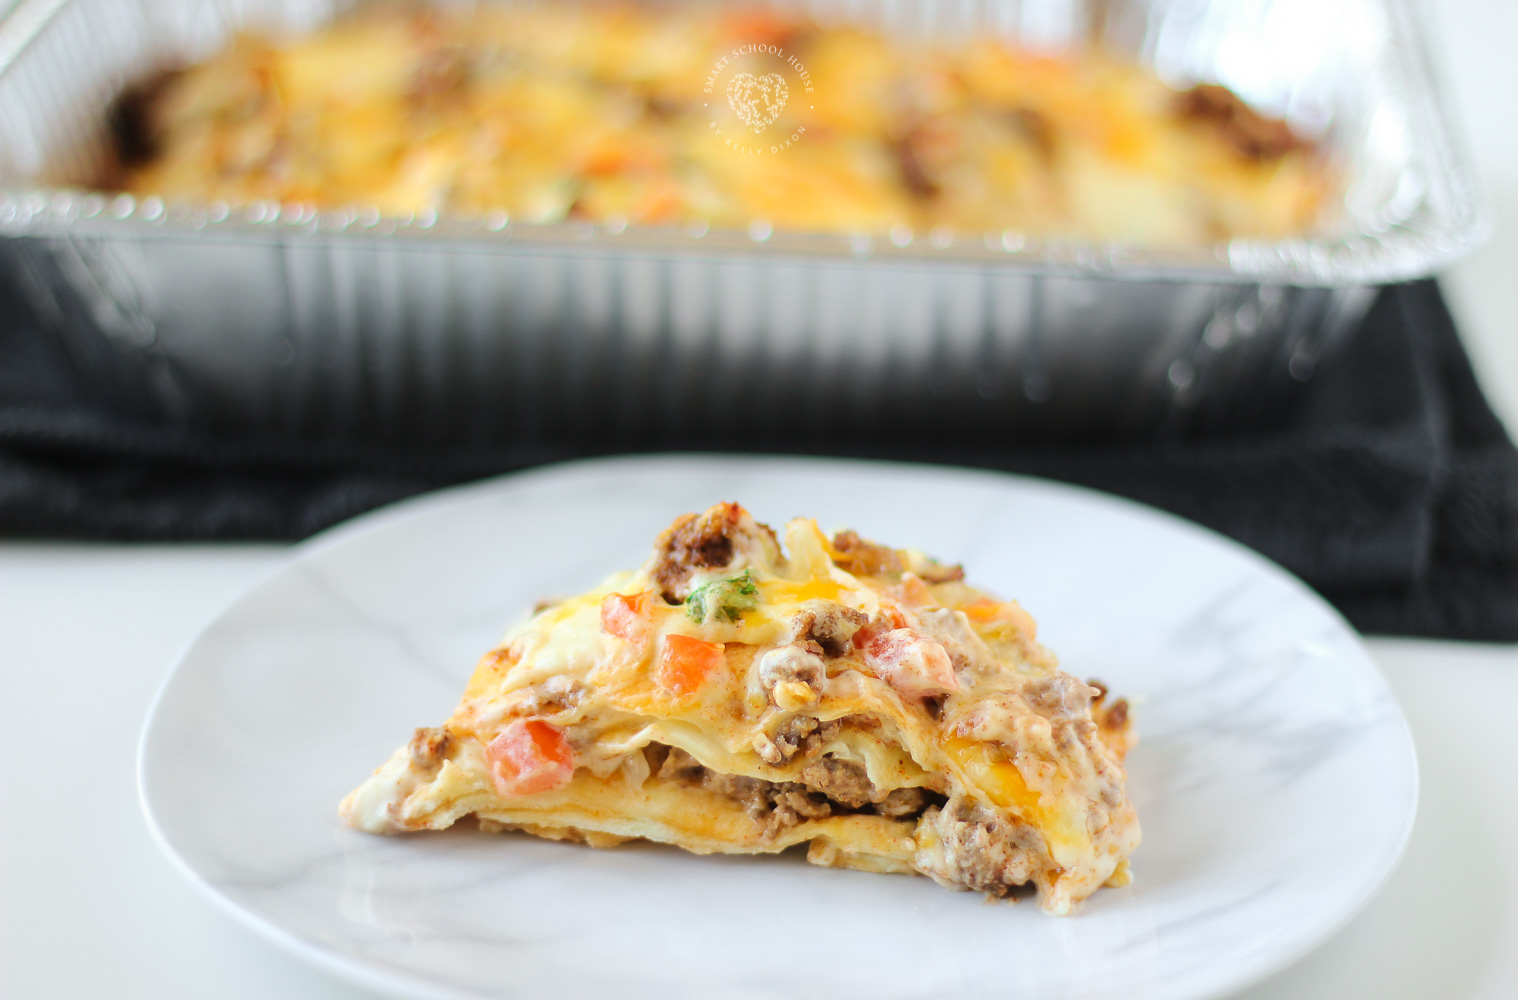 Taco Lasagna is made with soft flour tortillas, seasoned taco ground beef, and pico de gallo. But the cheese is really what makes this Taco Lasagna OVER THE TOP!